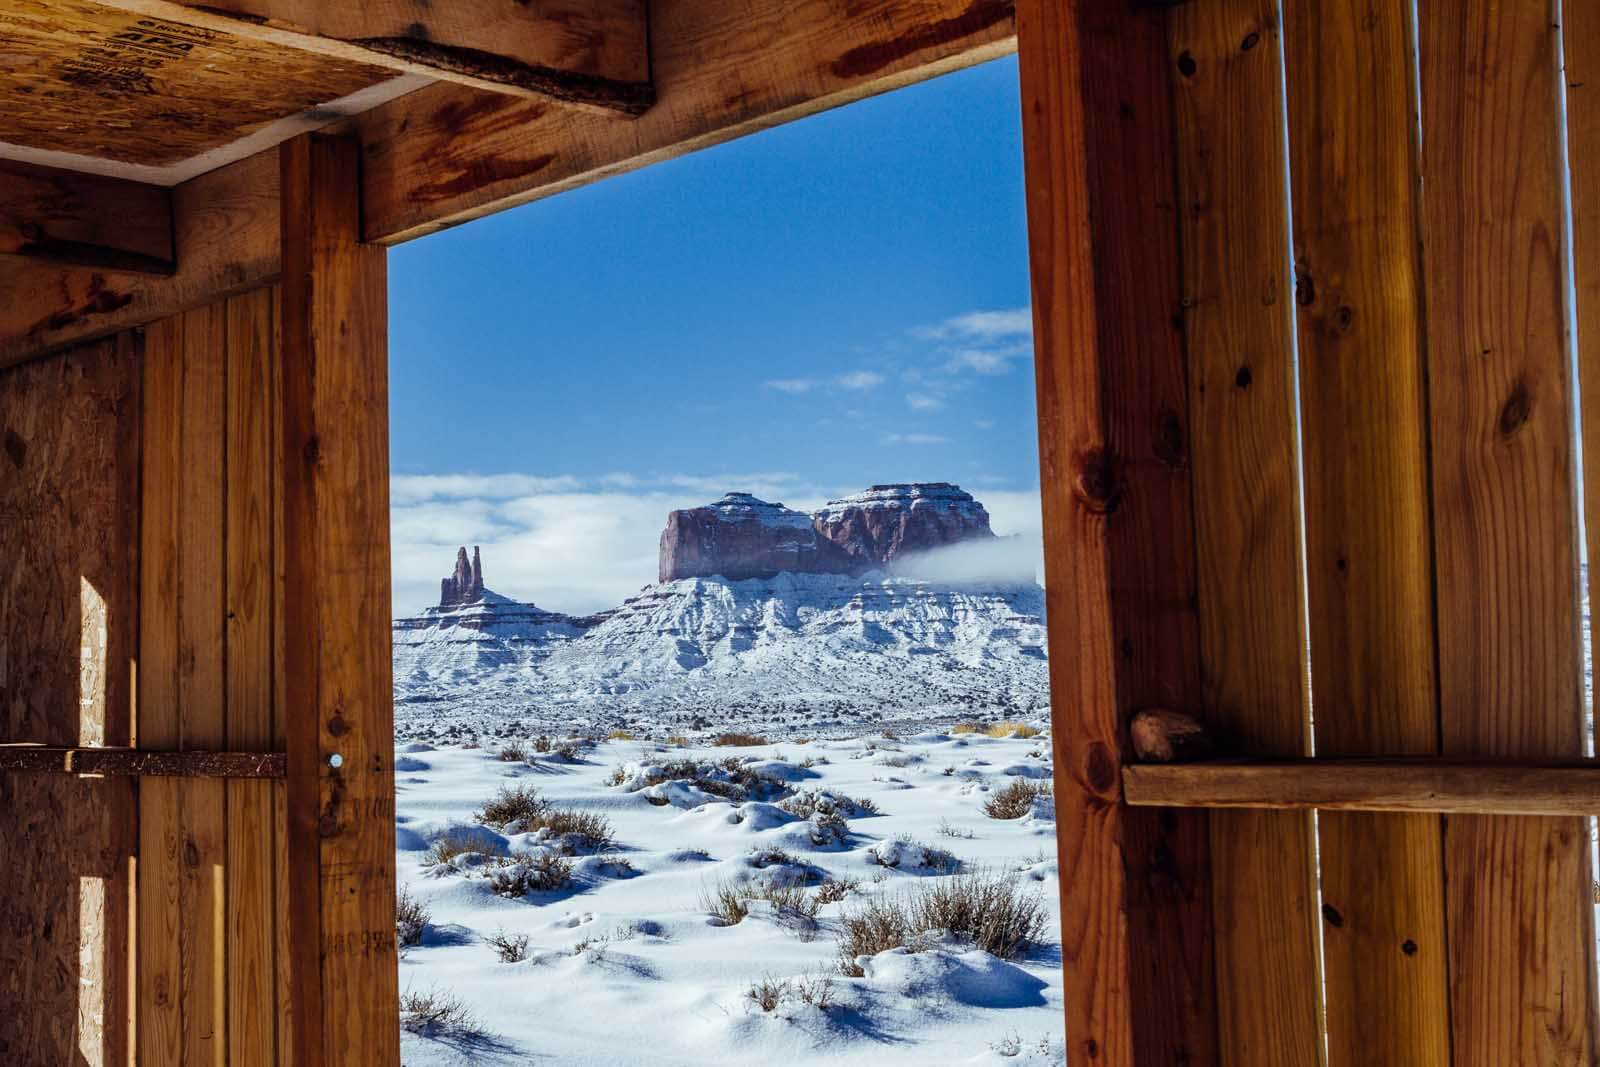 View of Monument Valley from a little window in a building